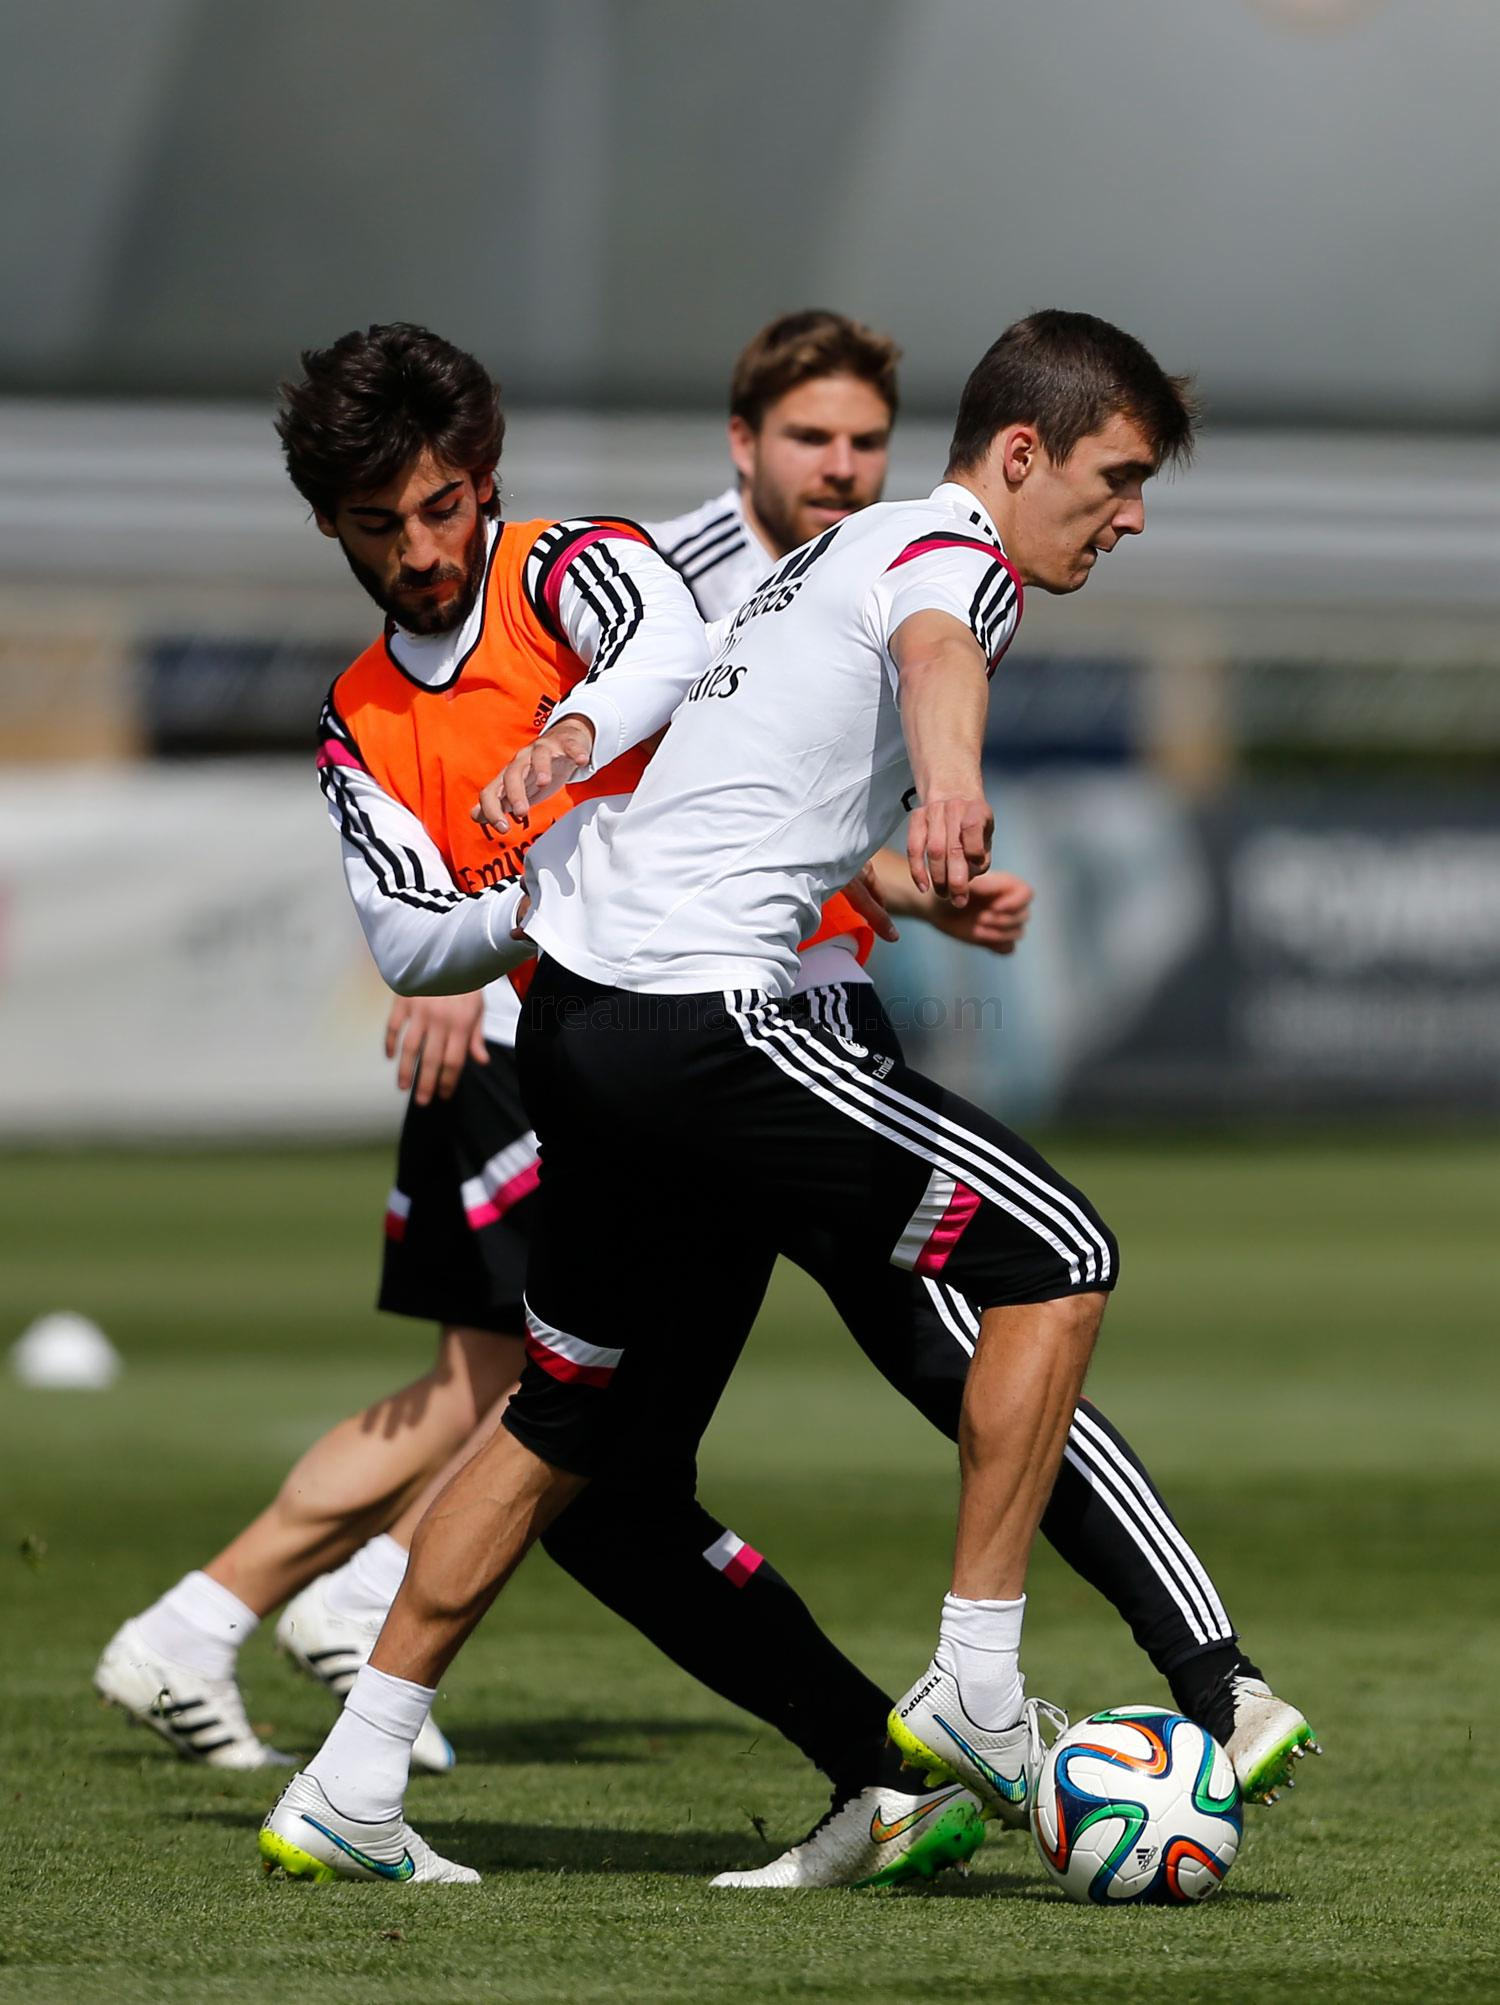 Real Madrid - Entrenamiento del Real Madrid - 26-03-2015